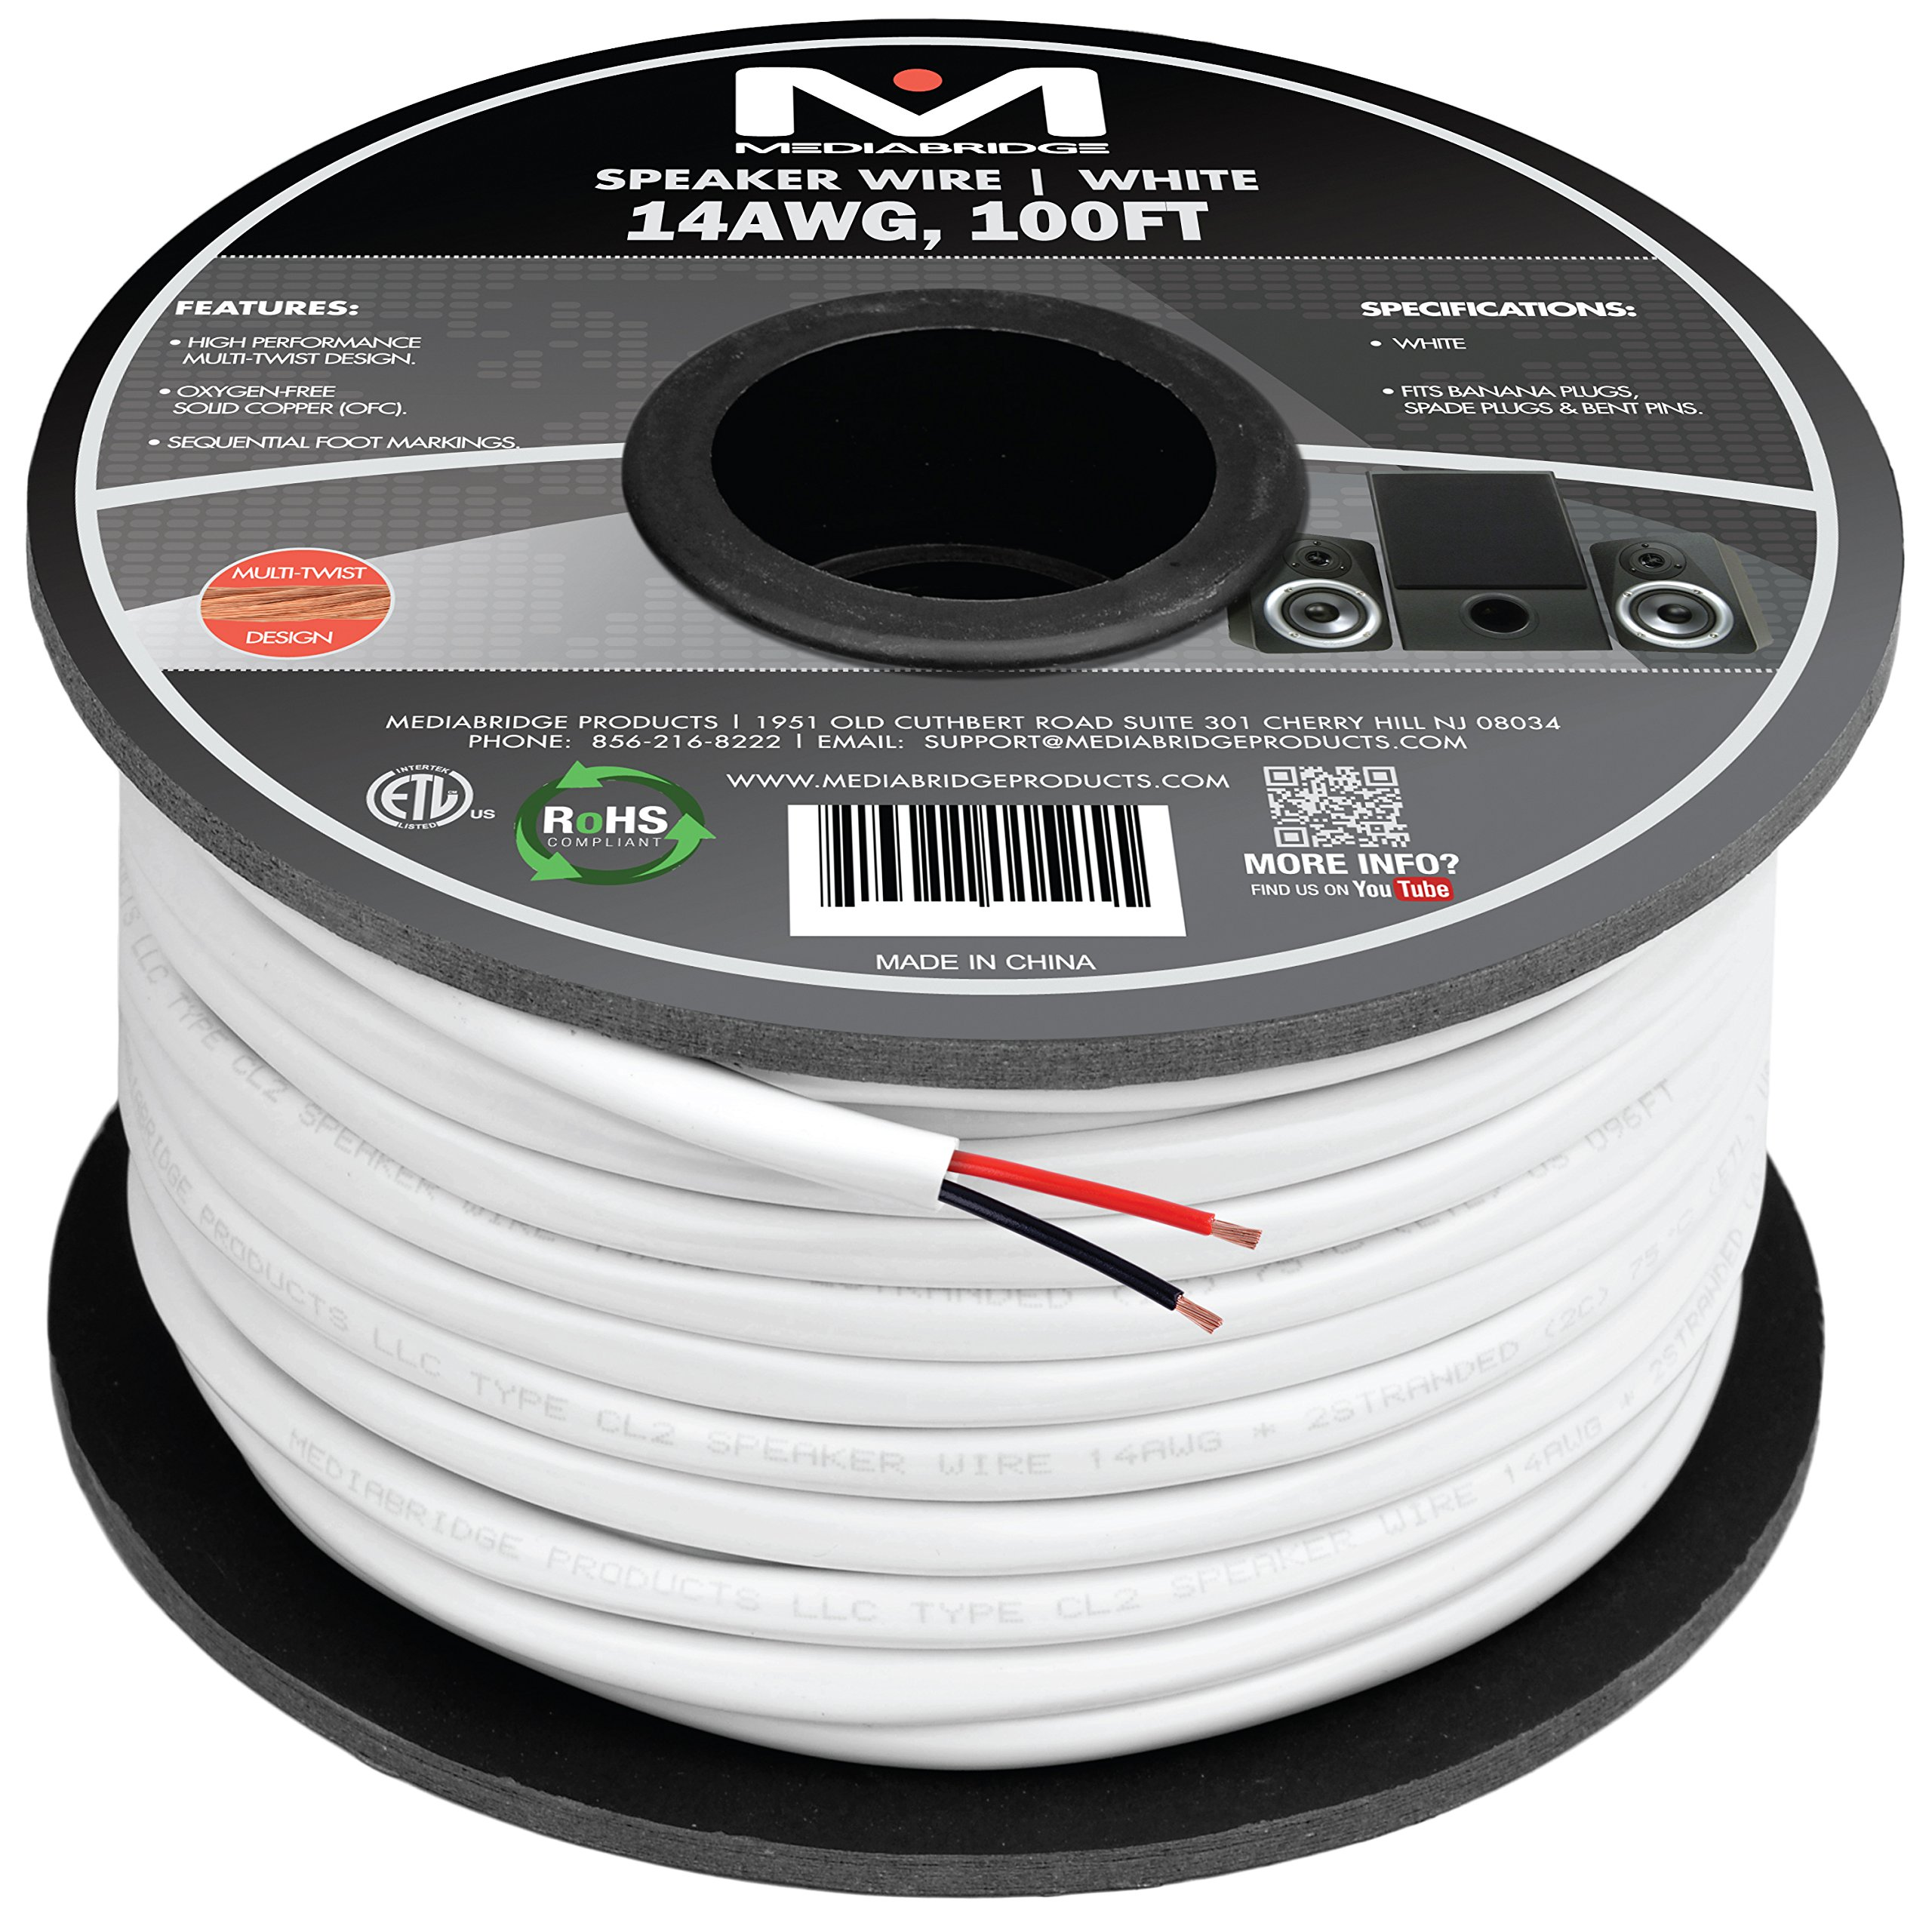 speaker wire in wall amazon com surround sound wall outlet how to run speaker wire through